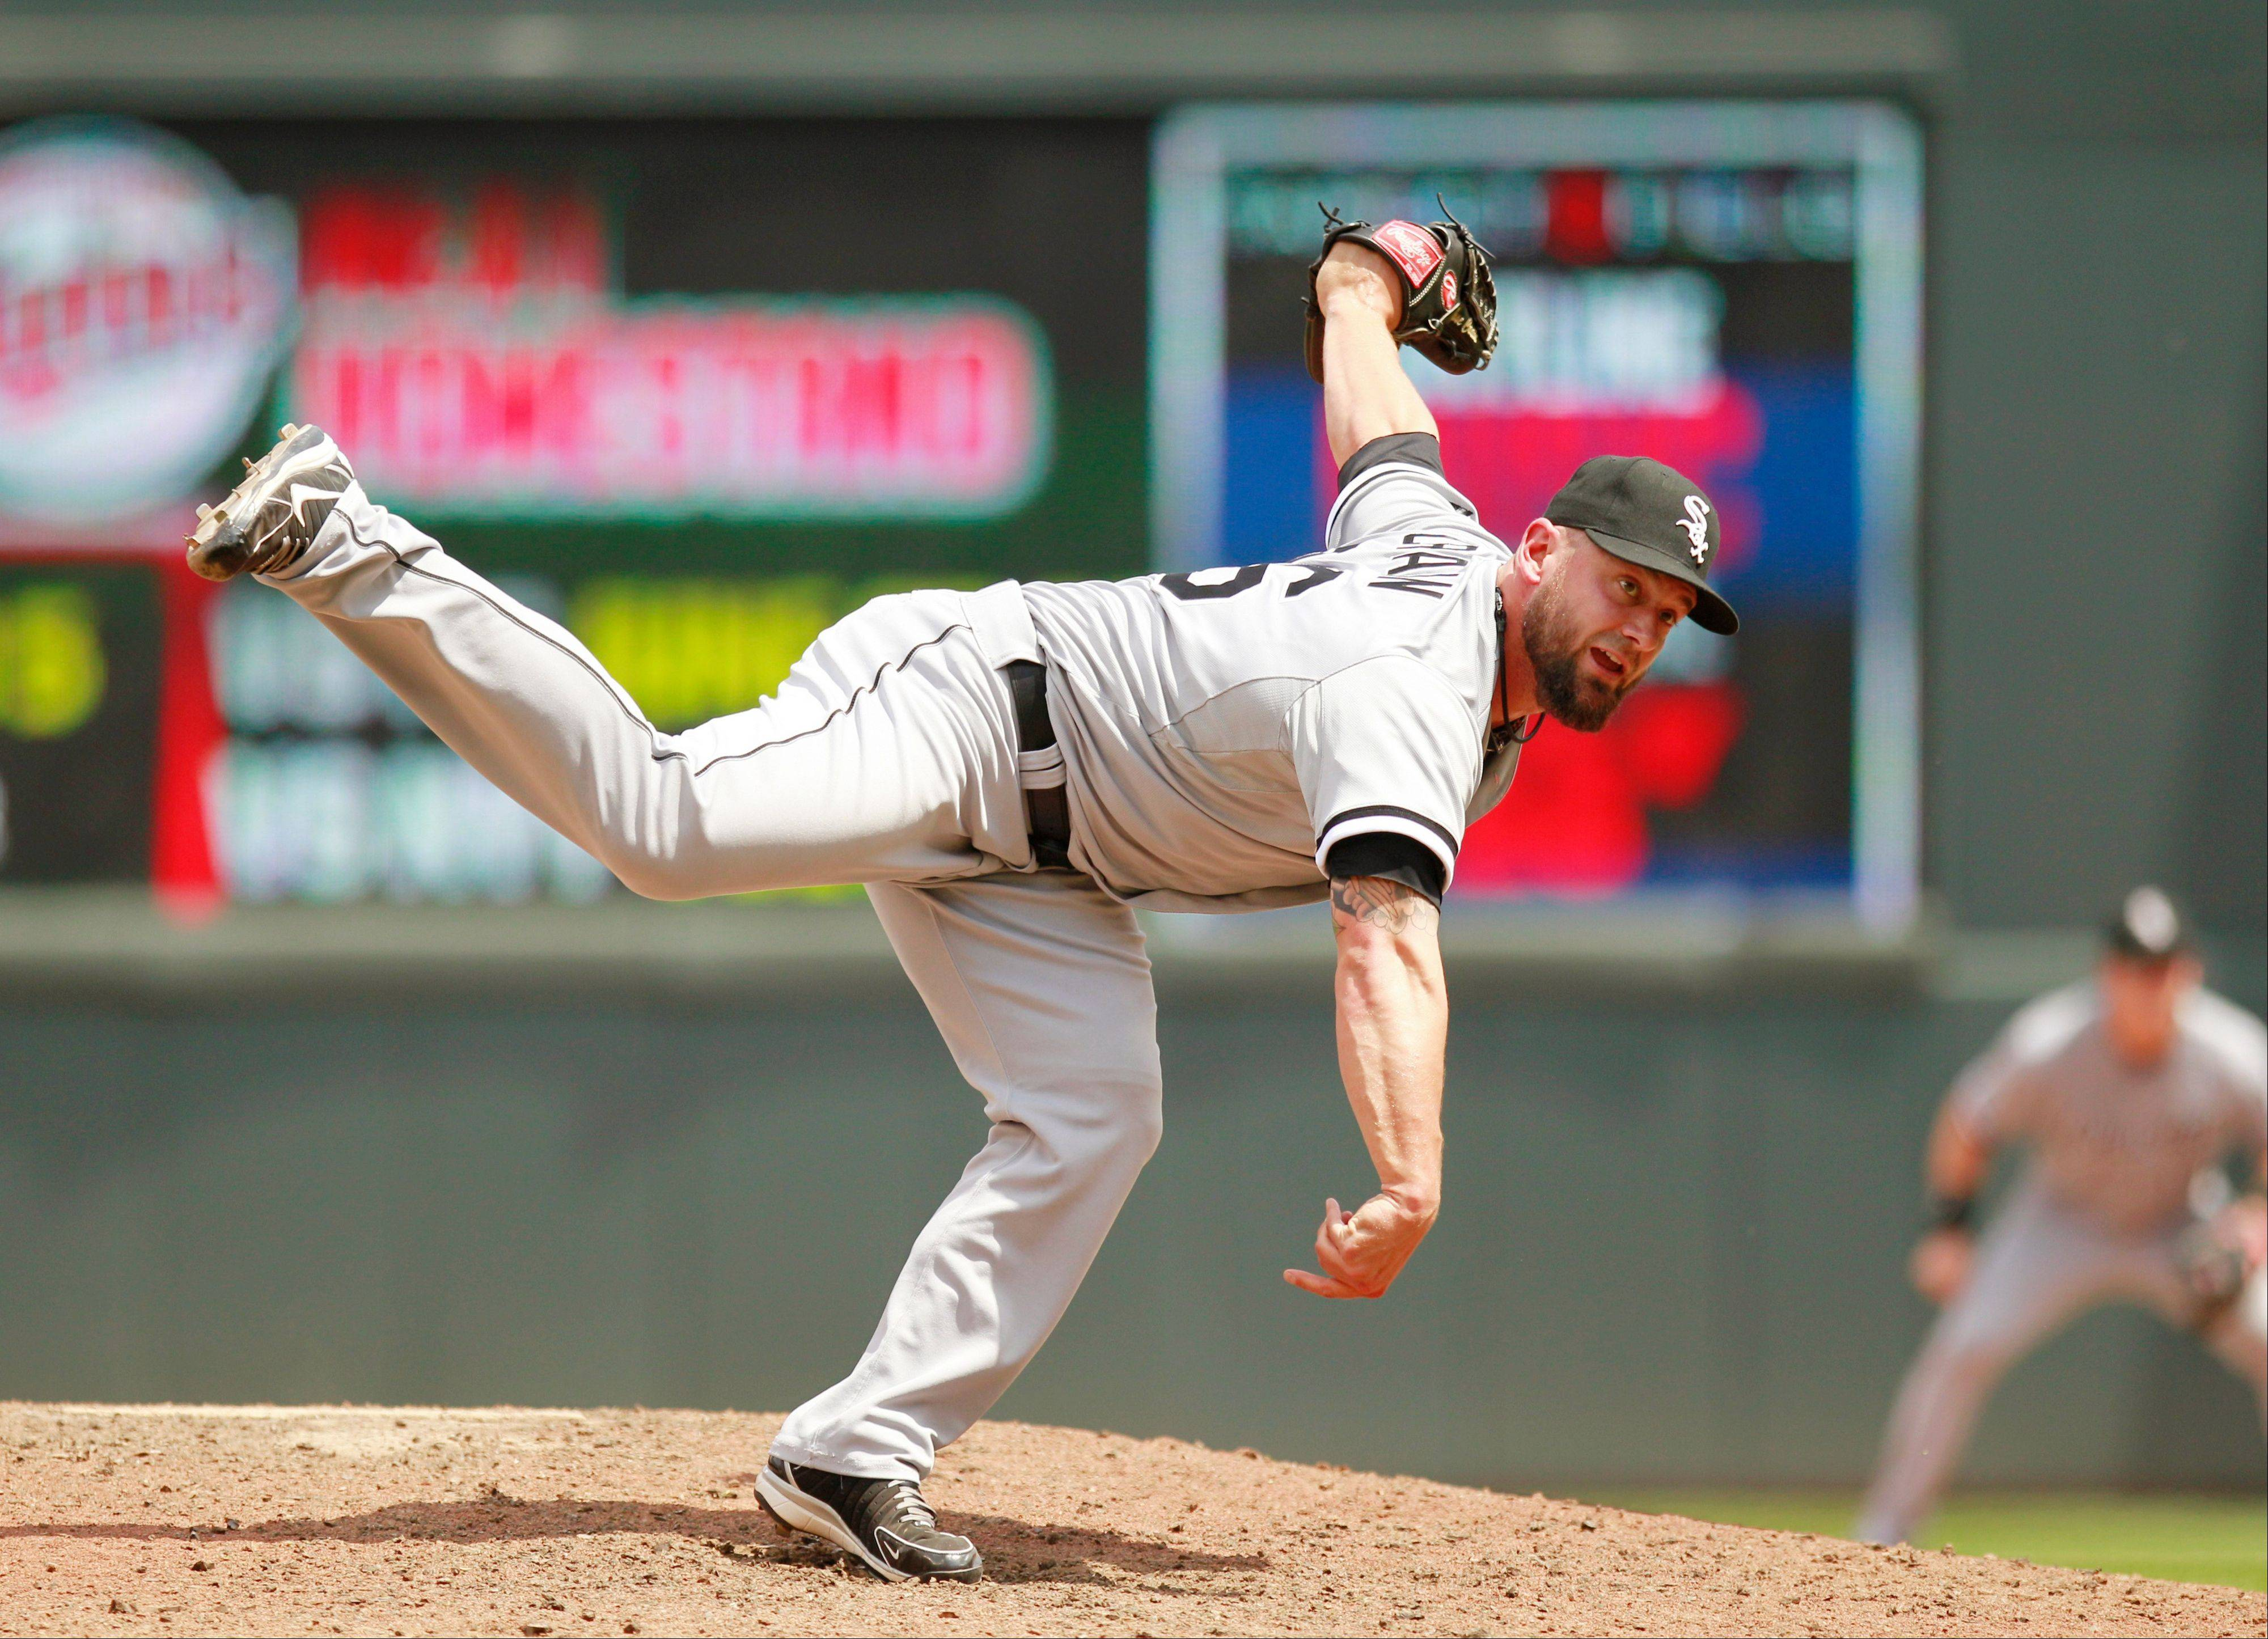 White Sox relief pitcher Jesse Crain has been one of the few bright spots for the team this season, and he just might find himself wearing a new uniform sometime before the trade deadline.